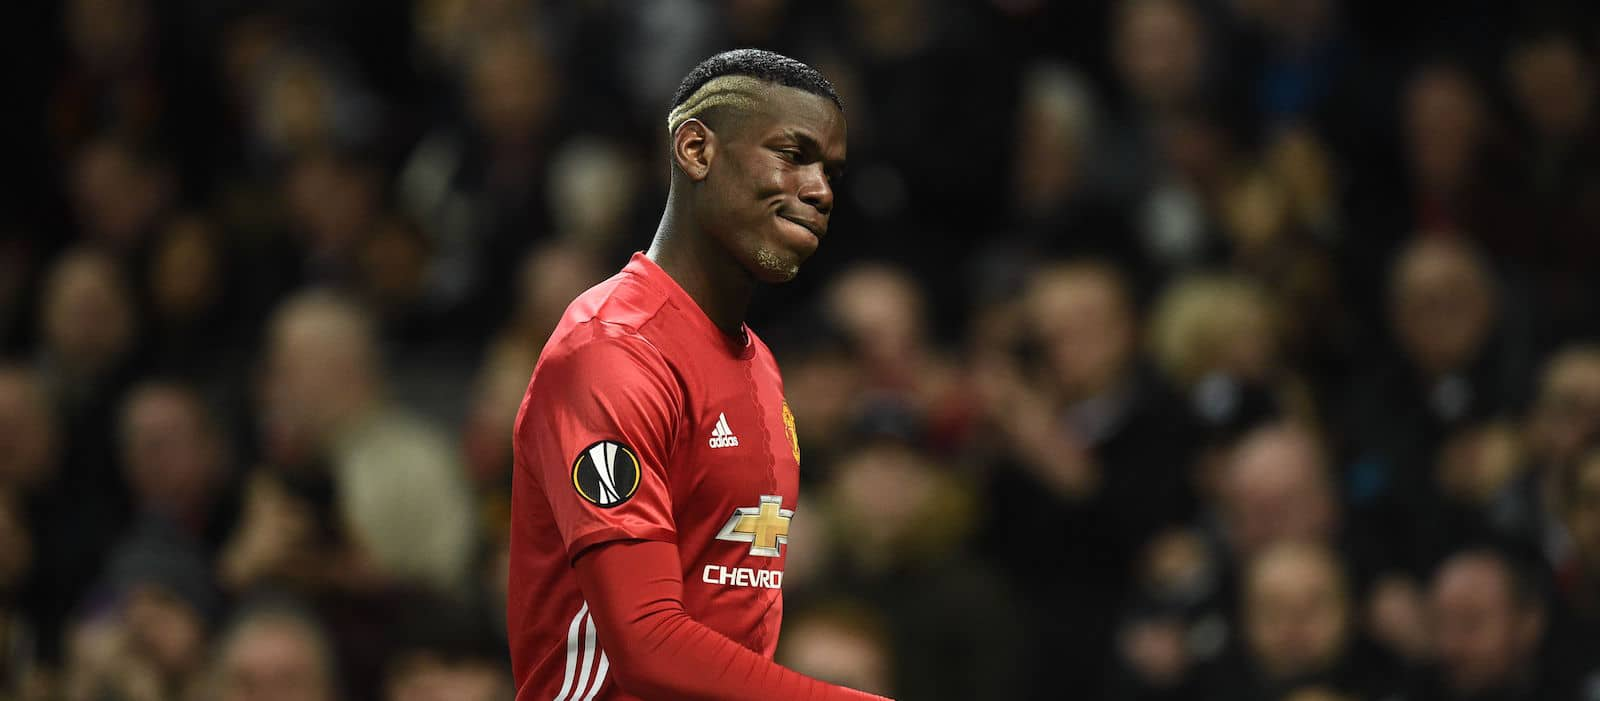 Manchester United's Paul Pogba expected back for West Bromwich Albion clash